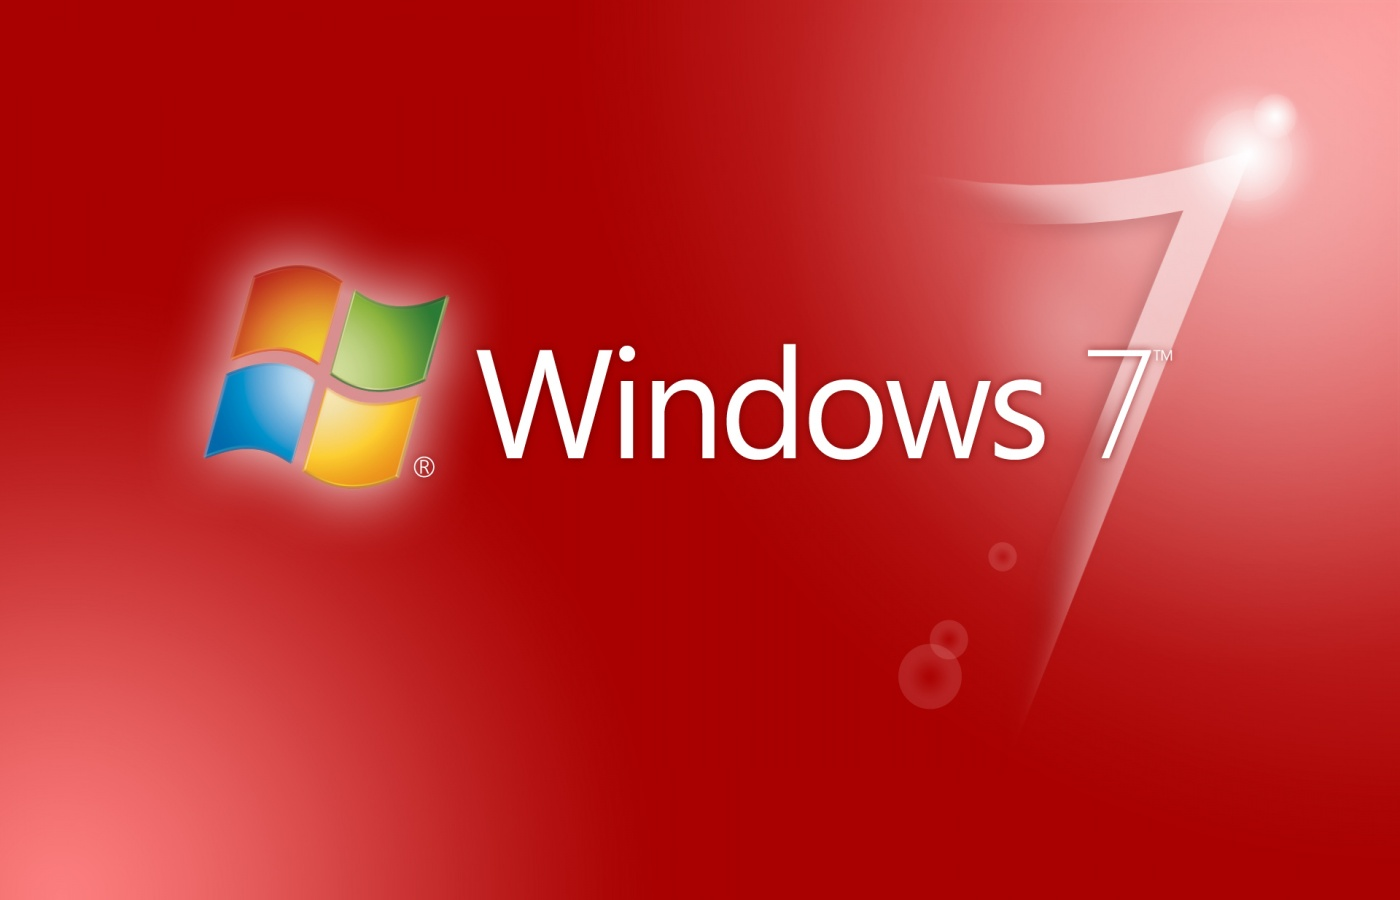 windows 7 professional red wallpaper wallpapersafari